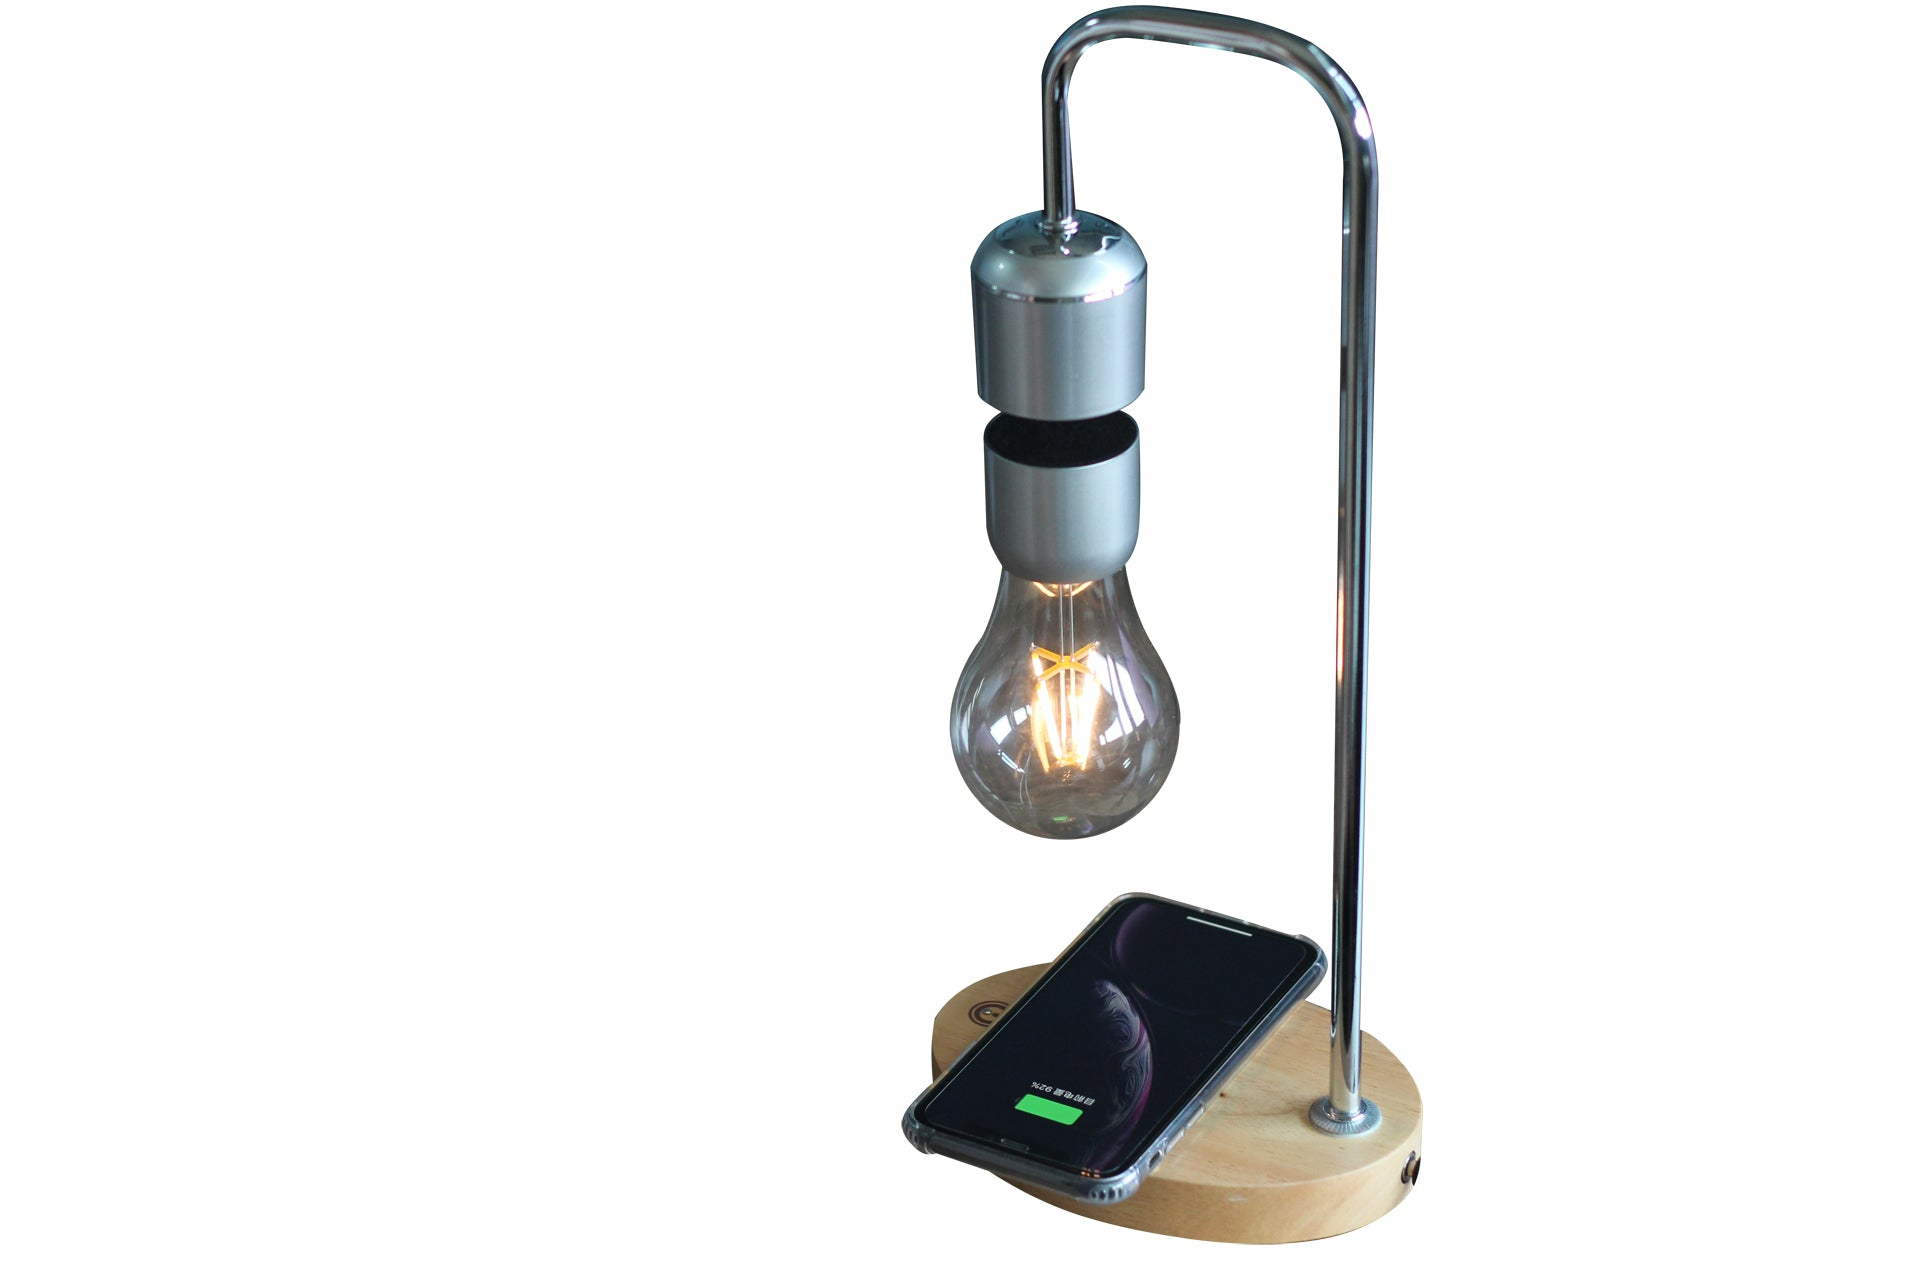 Floating lamp with wireless charger